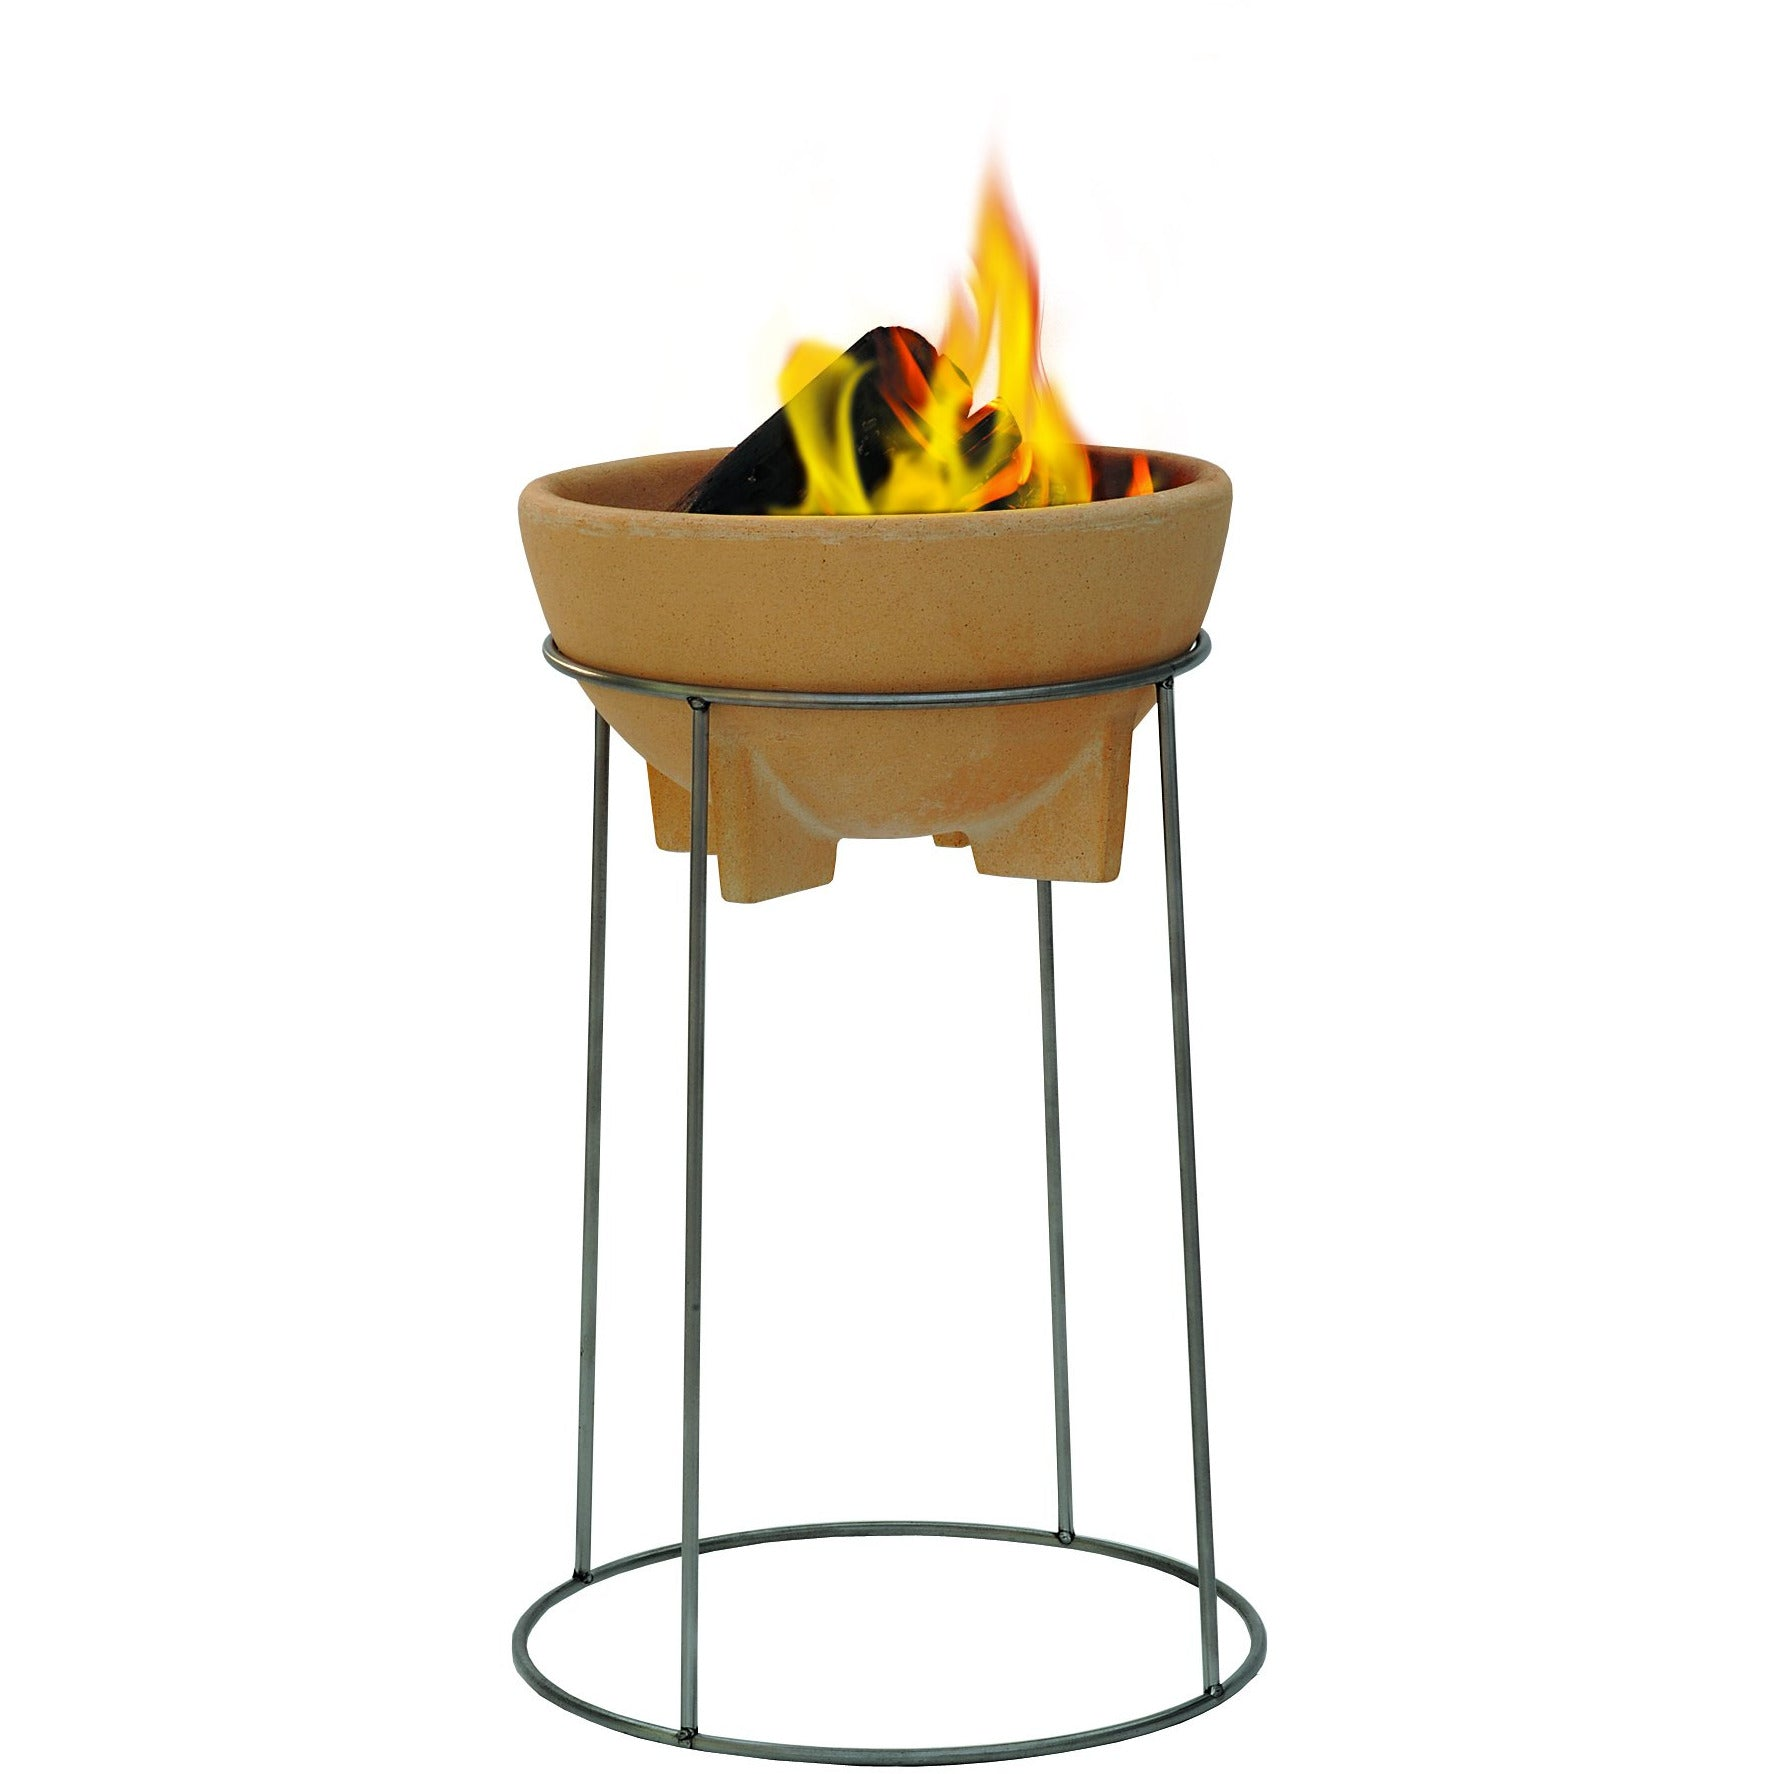 Stand for Brazier Classic - Outdoor Living Essentials